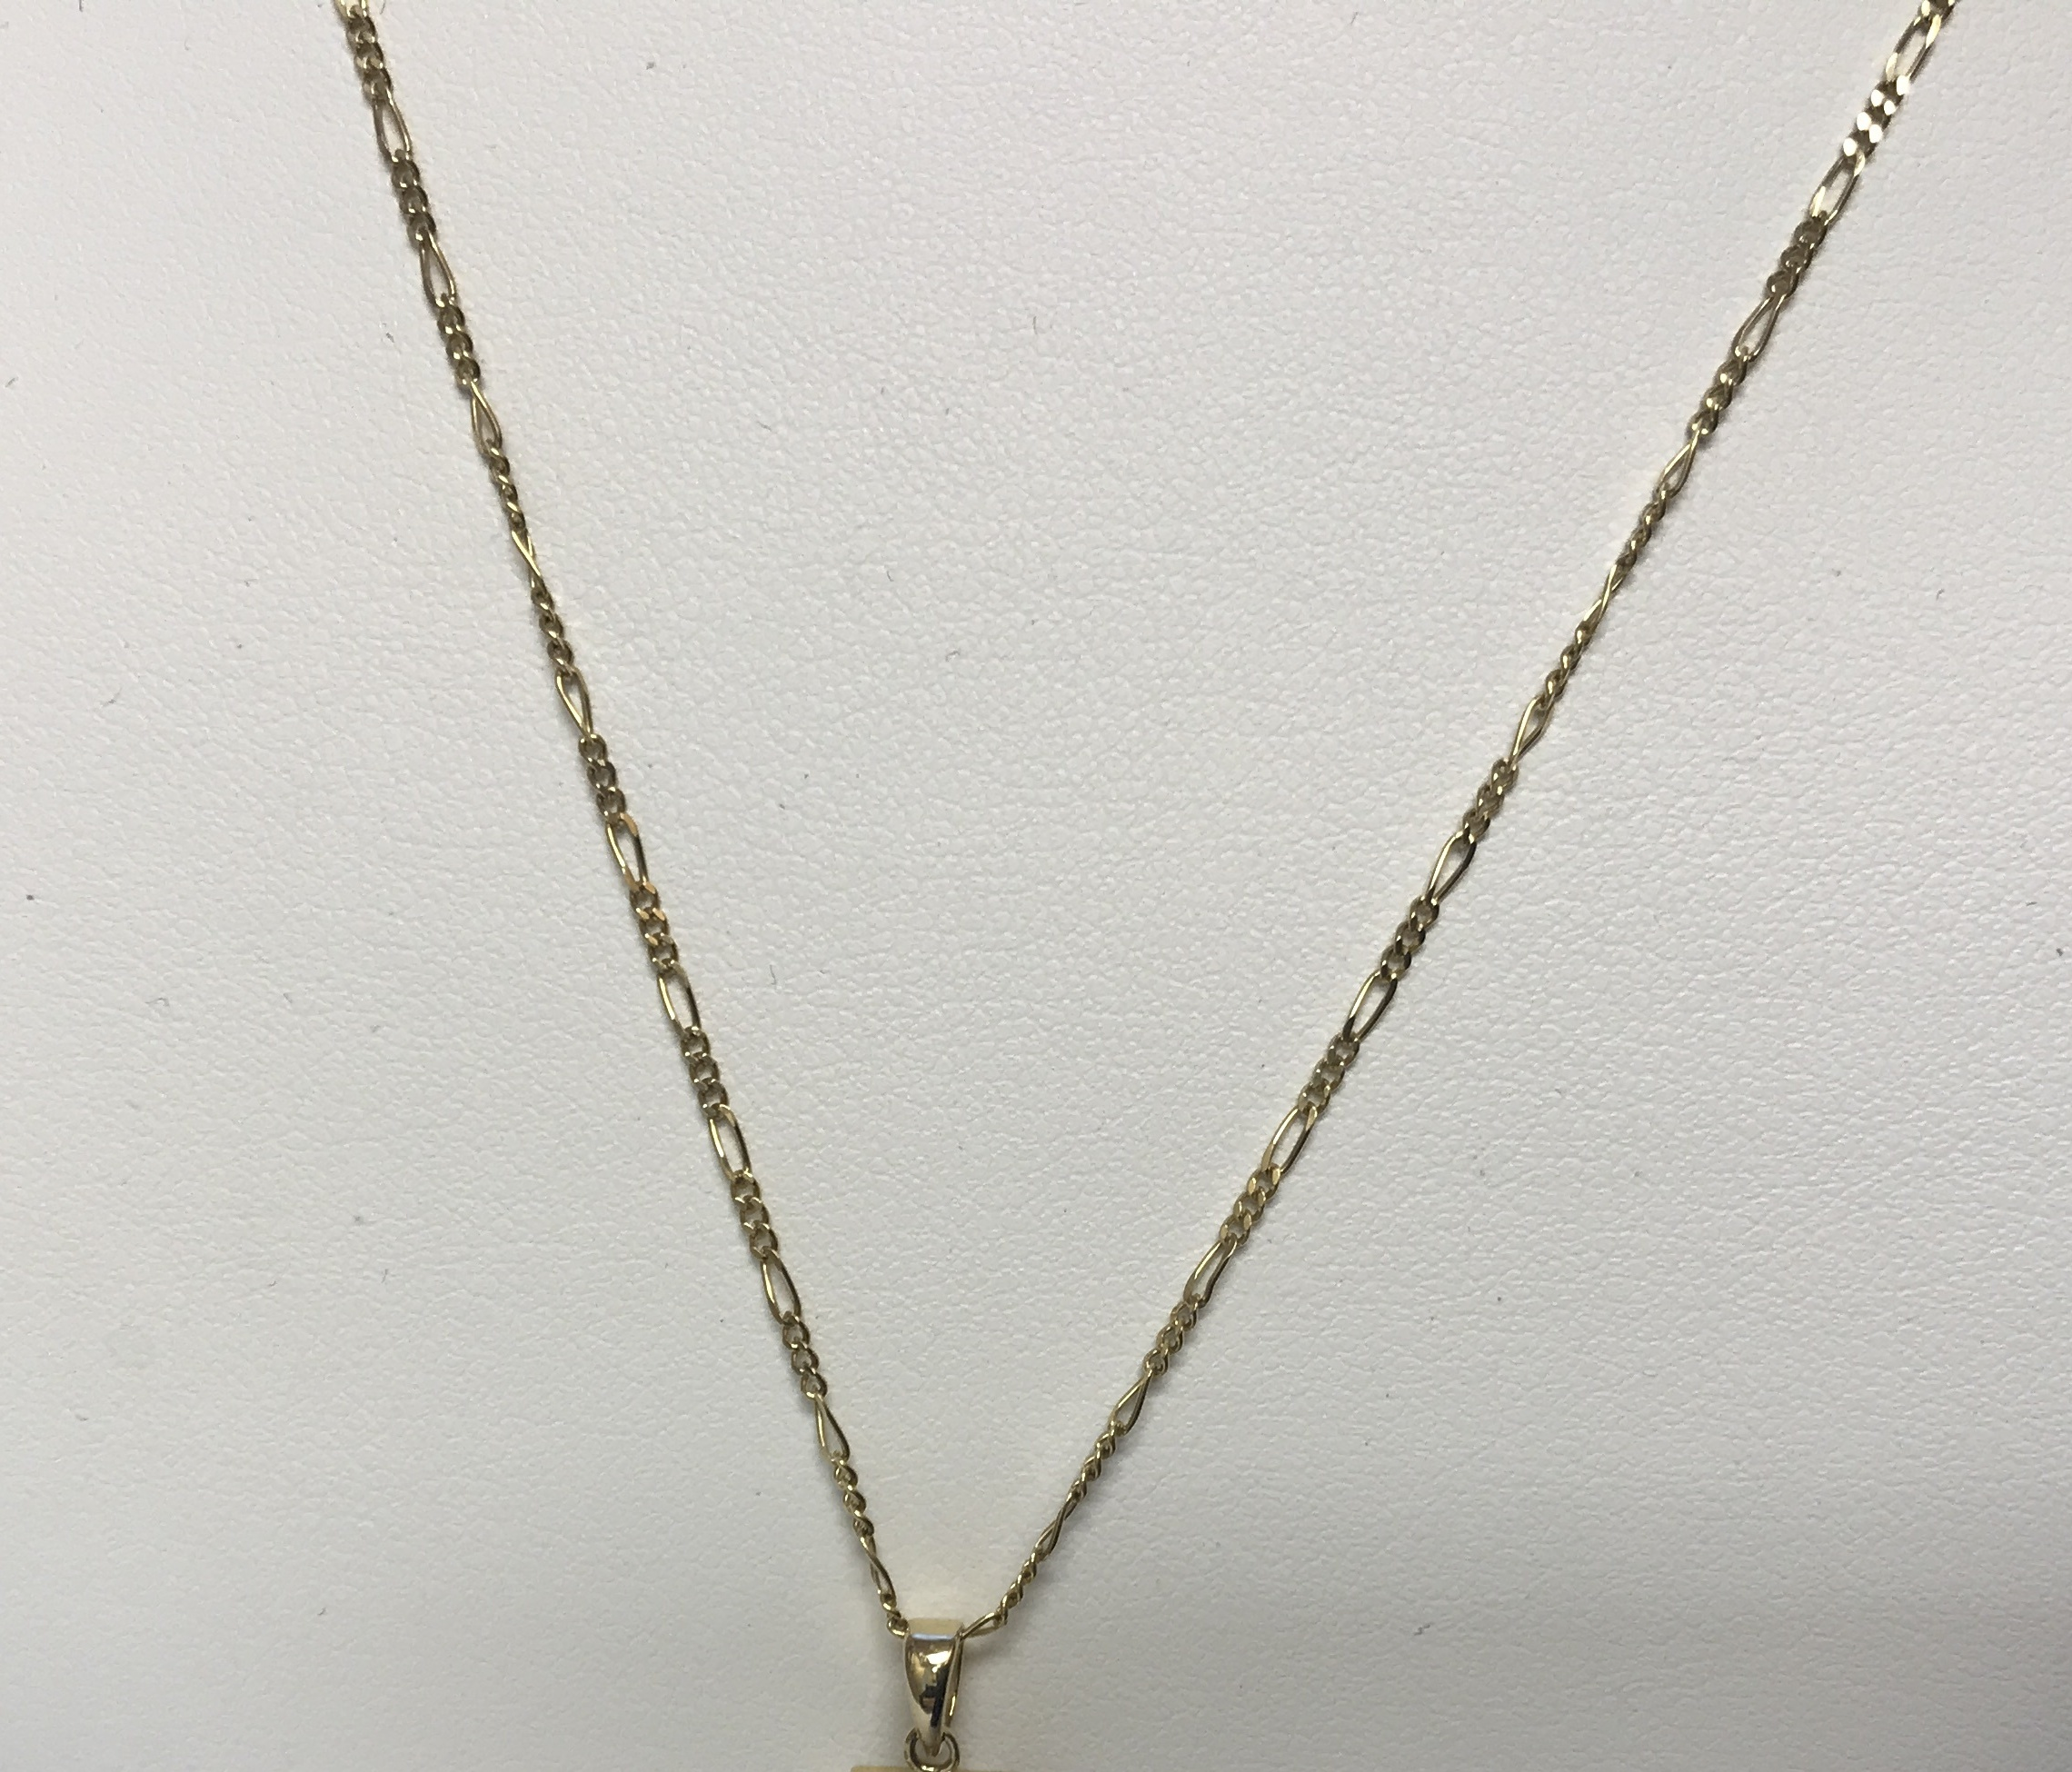 Link Chain 14K Yellow Gold 1.9g